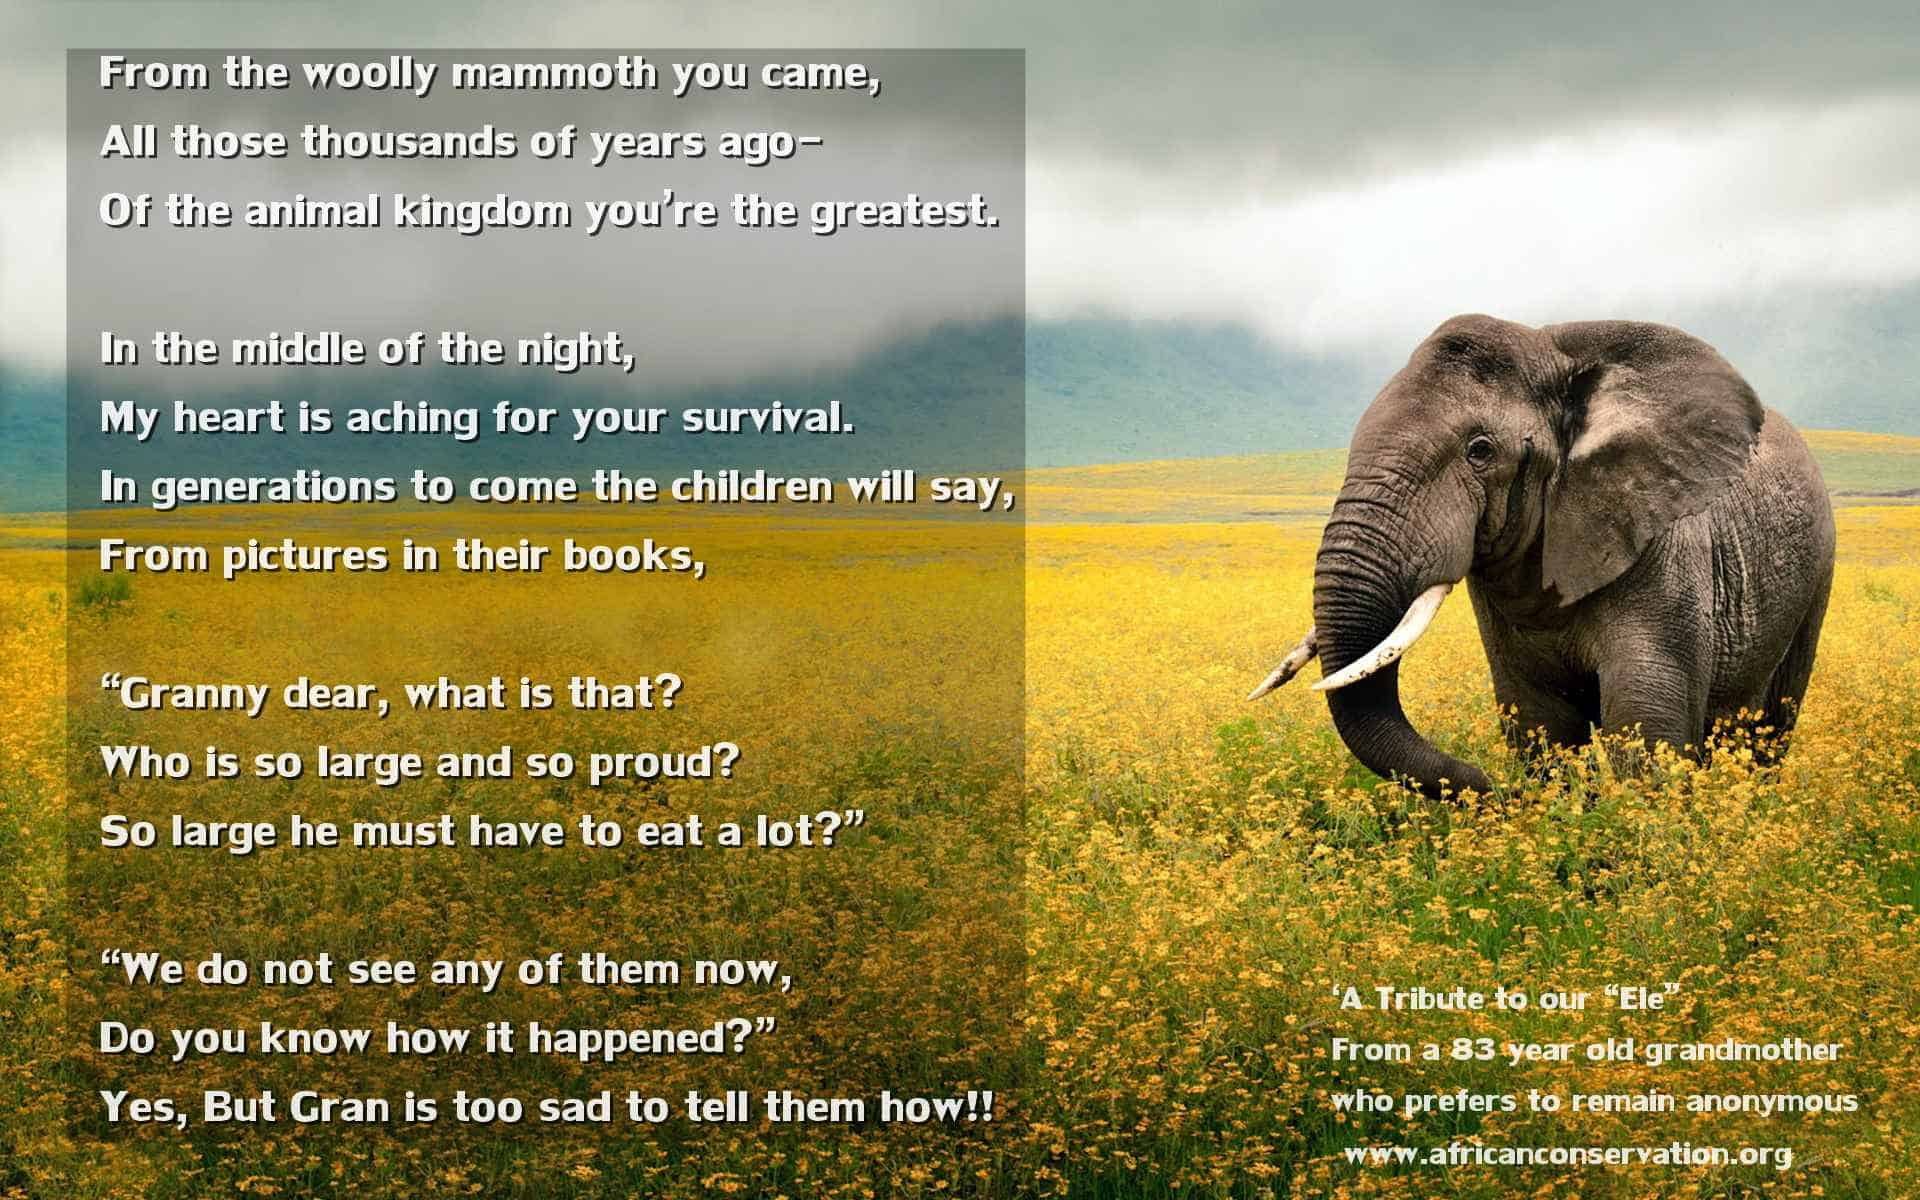 "'A Tribute to our ""Ele"" with a mug of coffee at my elbow' – Elephant Poem"